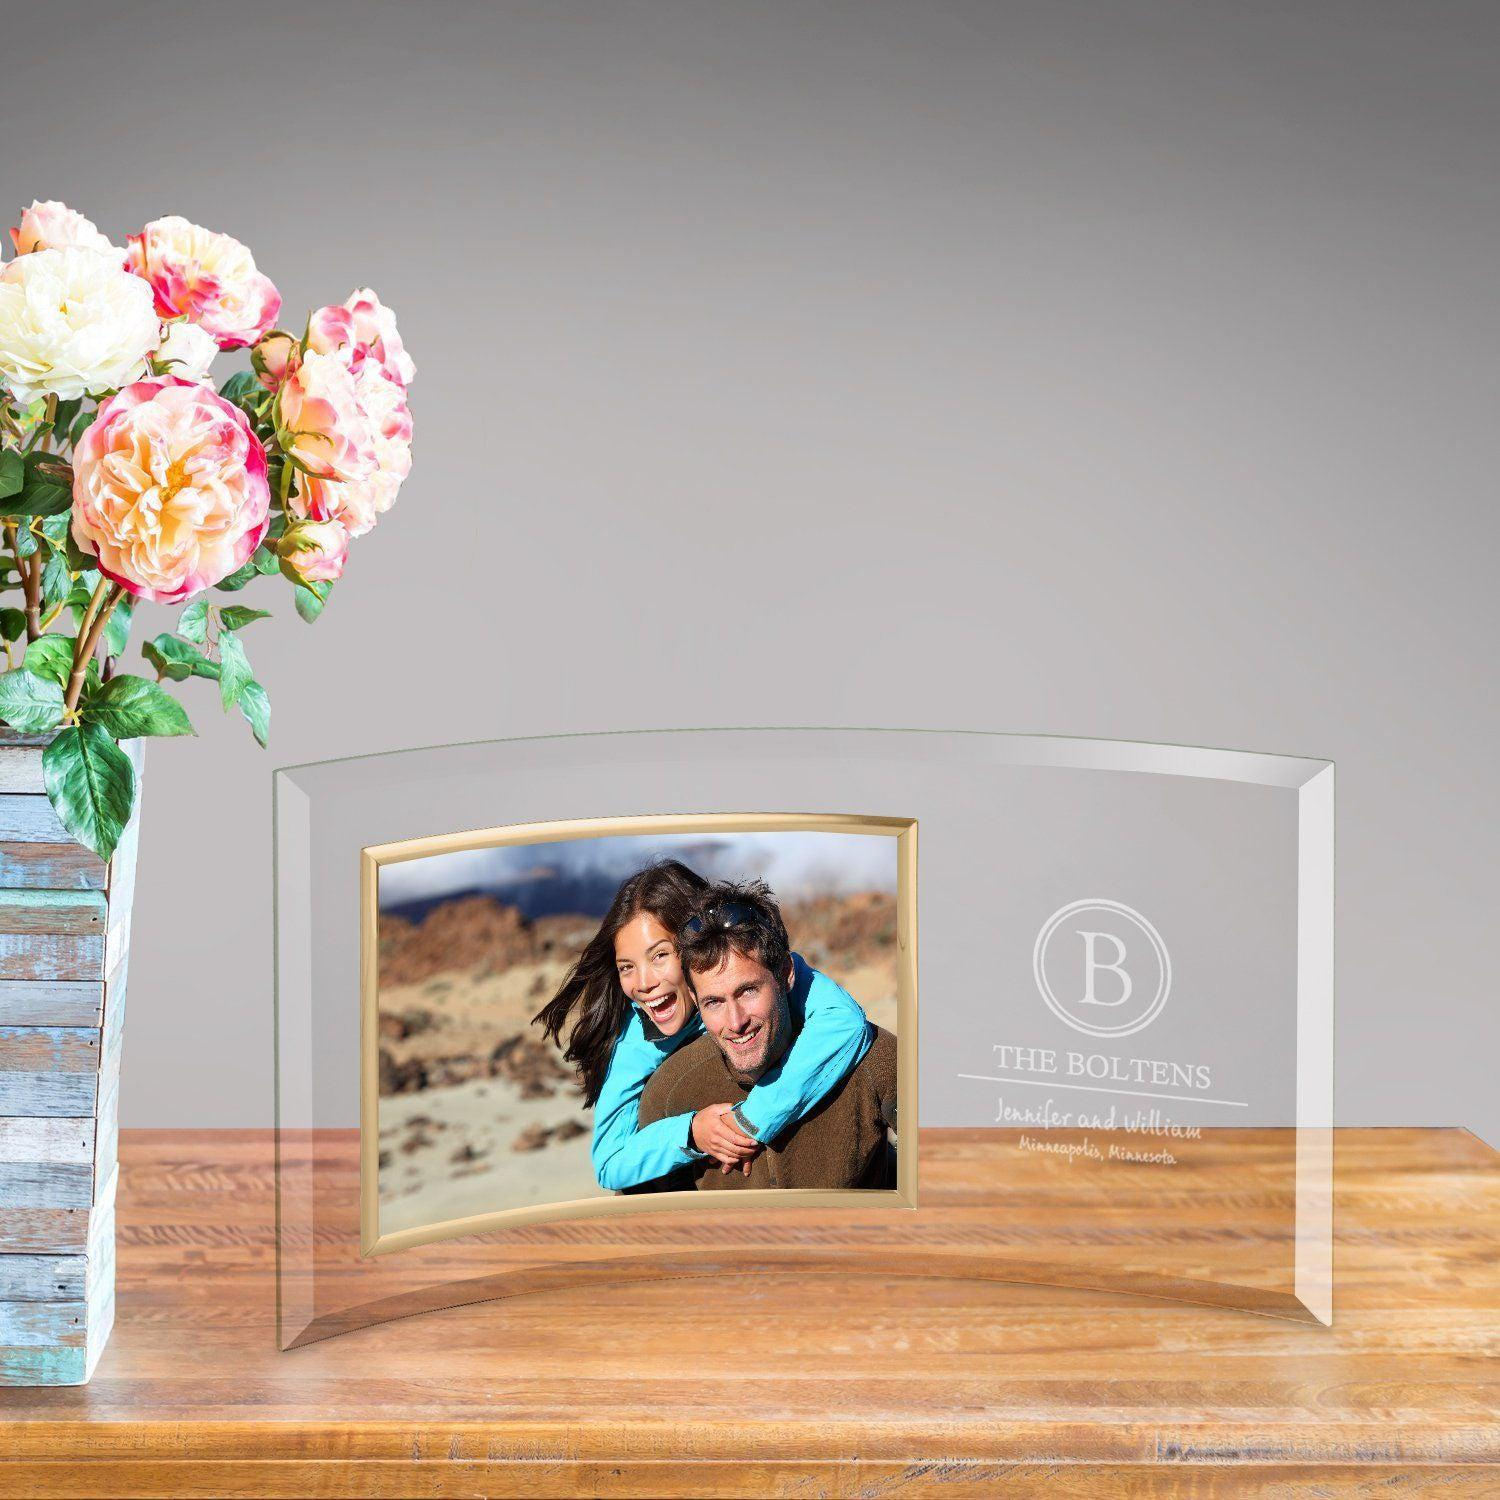 Personalized Family Name Glass Photo Frame